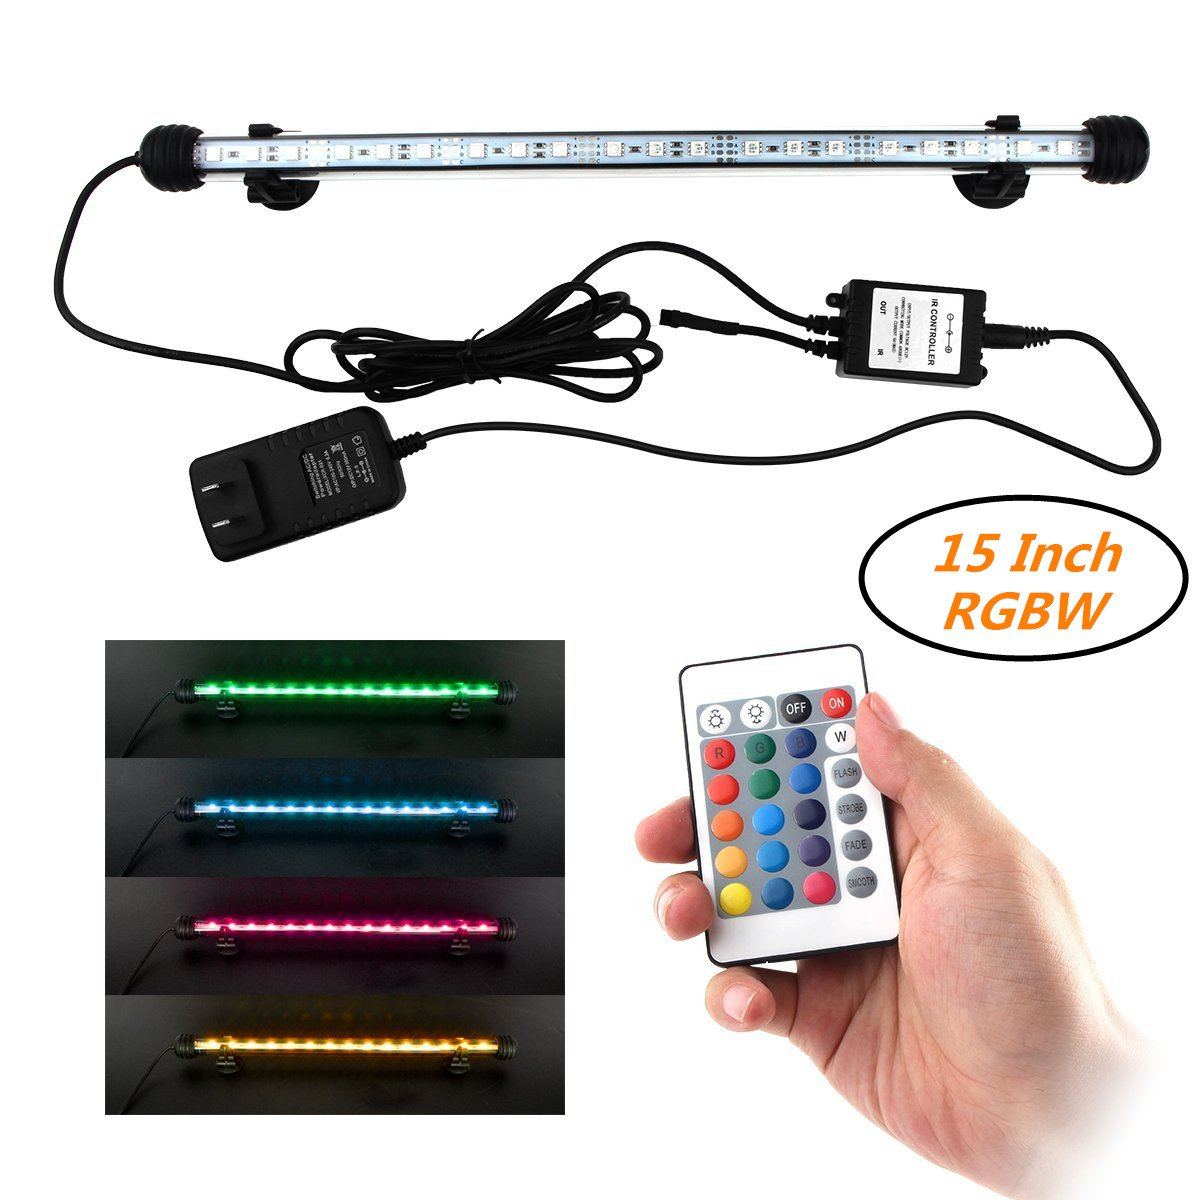 Multi-Color Remote Controlled Dimmable Aquarium Light COVO-ART RGBW LED Light Fixture for Aquarium/ Fish Tank(15inch RGB)